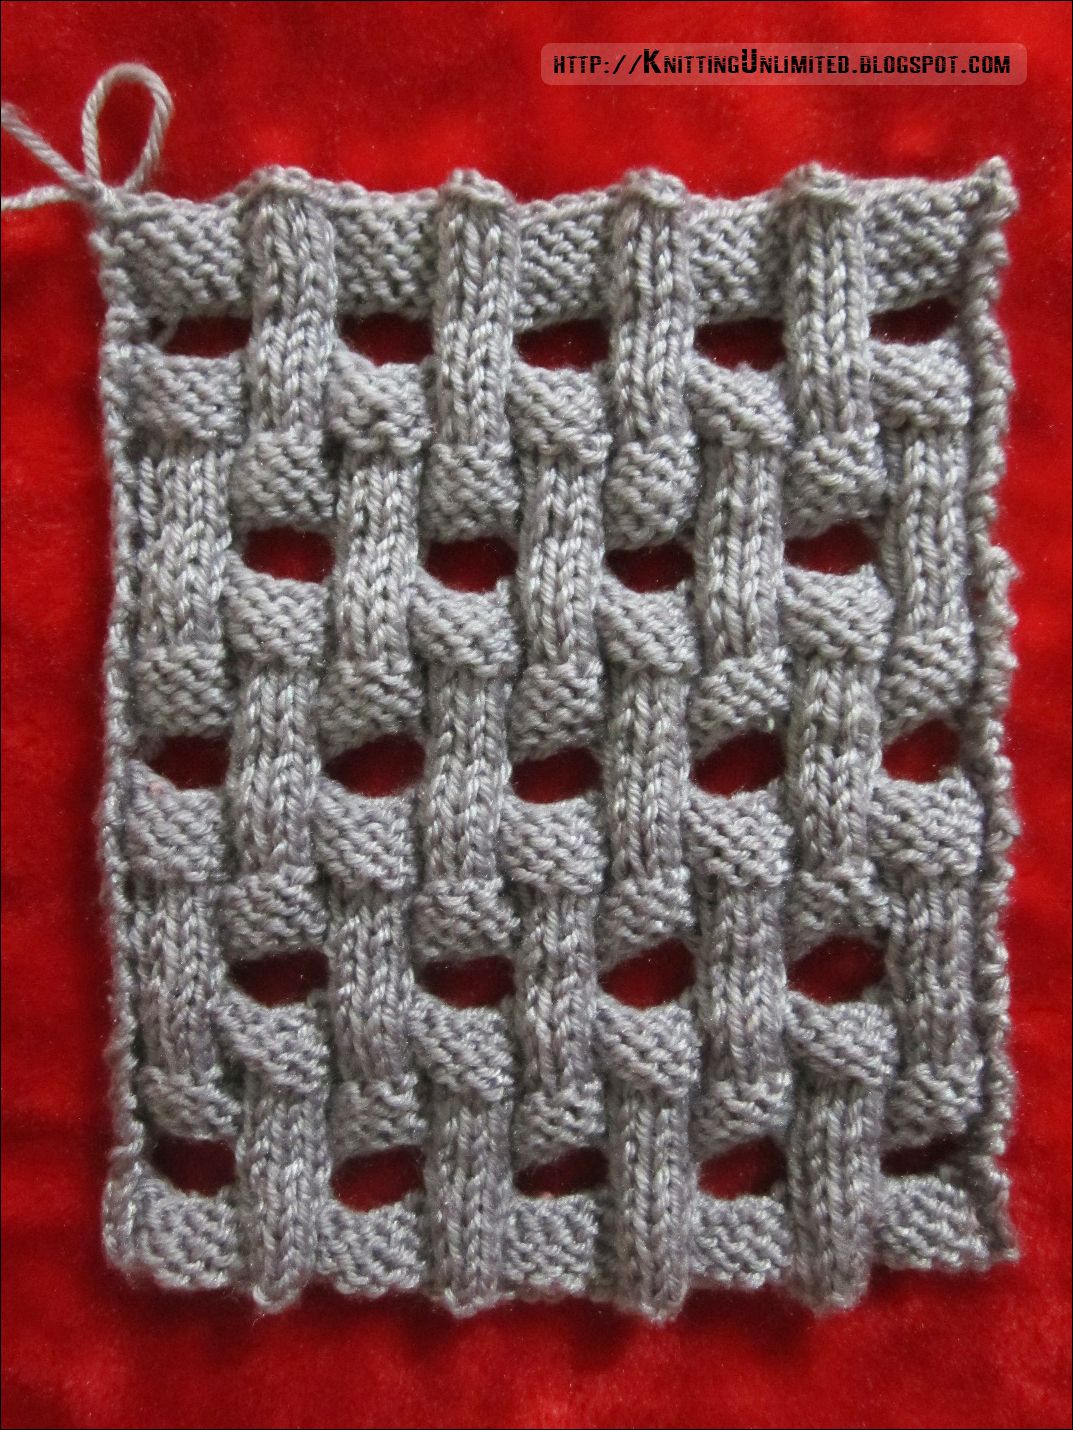 Openwork basket weave is a wonderful knitting stitch pattern